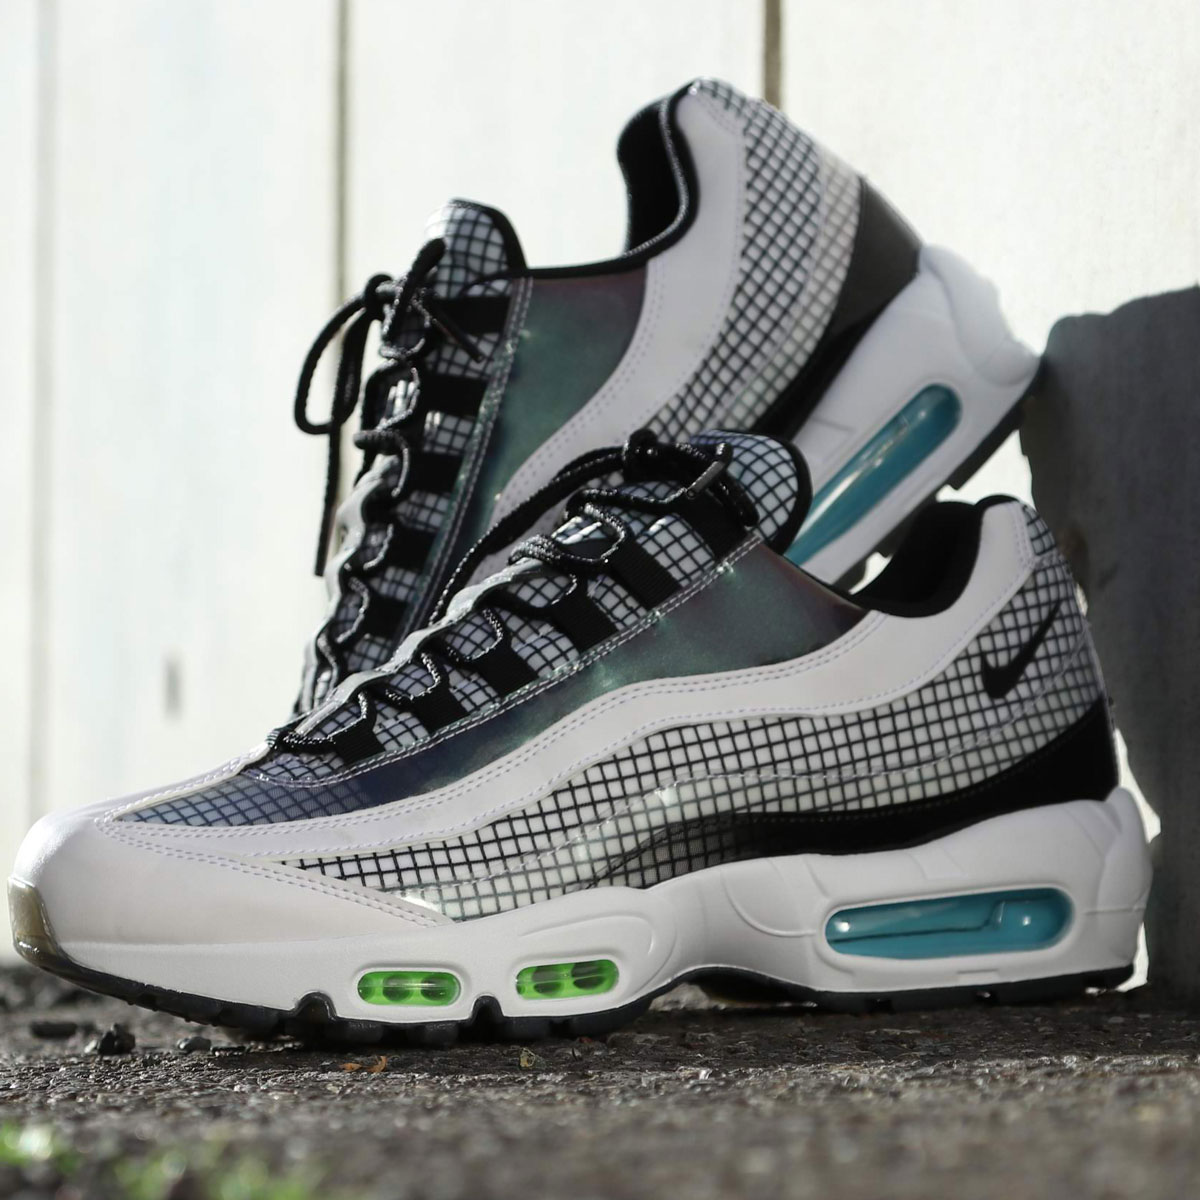 NIKE AIR MAX 95 LV8 (ナイキ エア マックス 95 LV8)WHITE/BLACK-BLUE GAZE-LIME BLAST【メンズ スニーカー】19SP-I